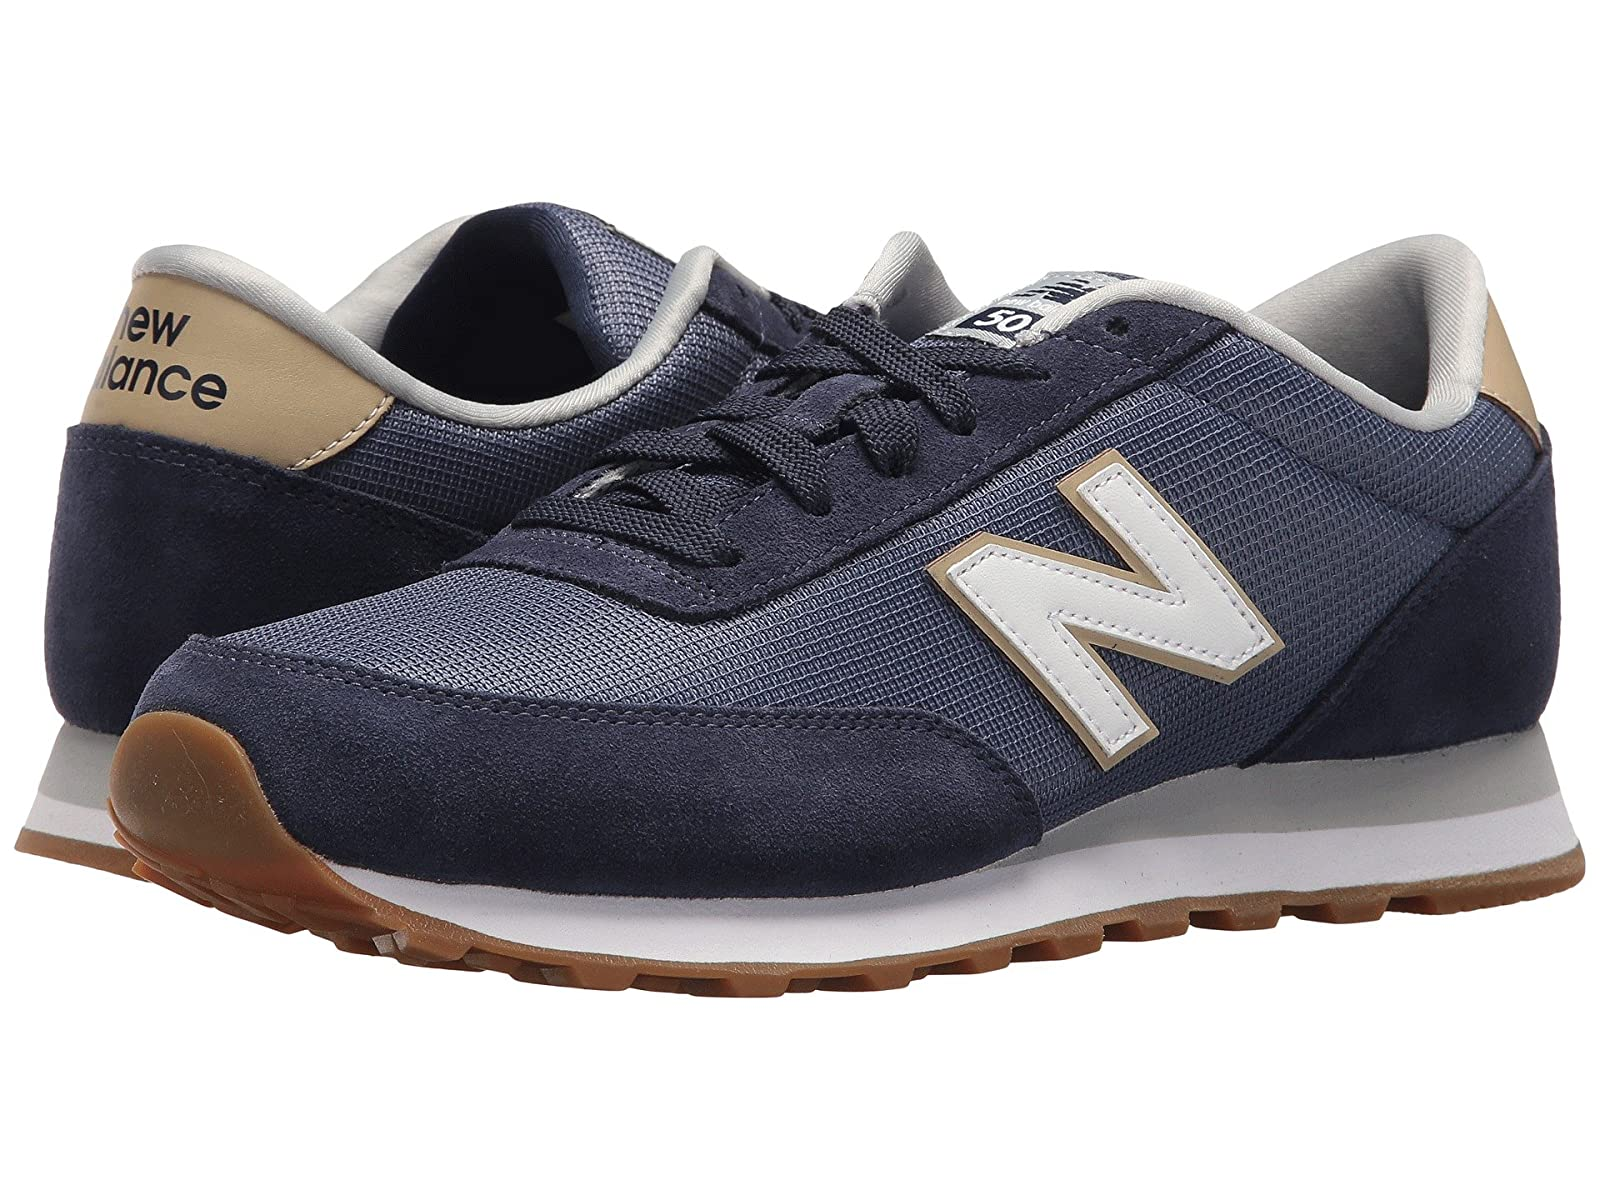 New Balance Classics ML501v1Cheap and distinctive eye-catching shoes